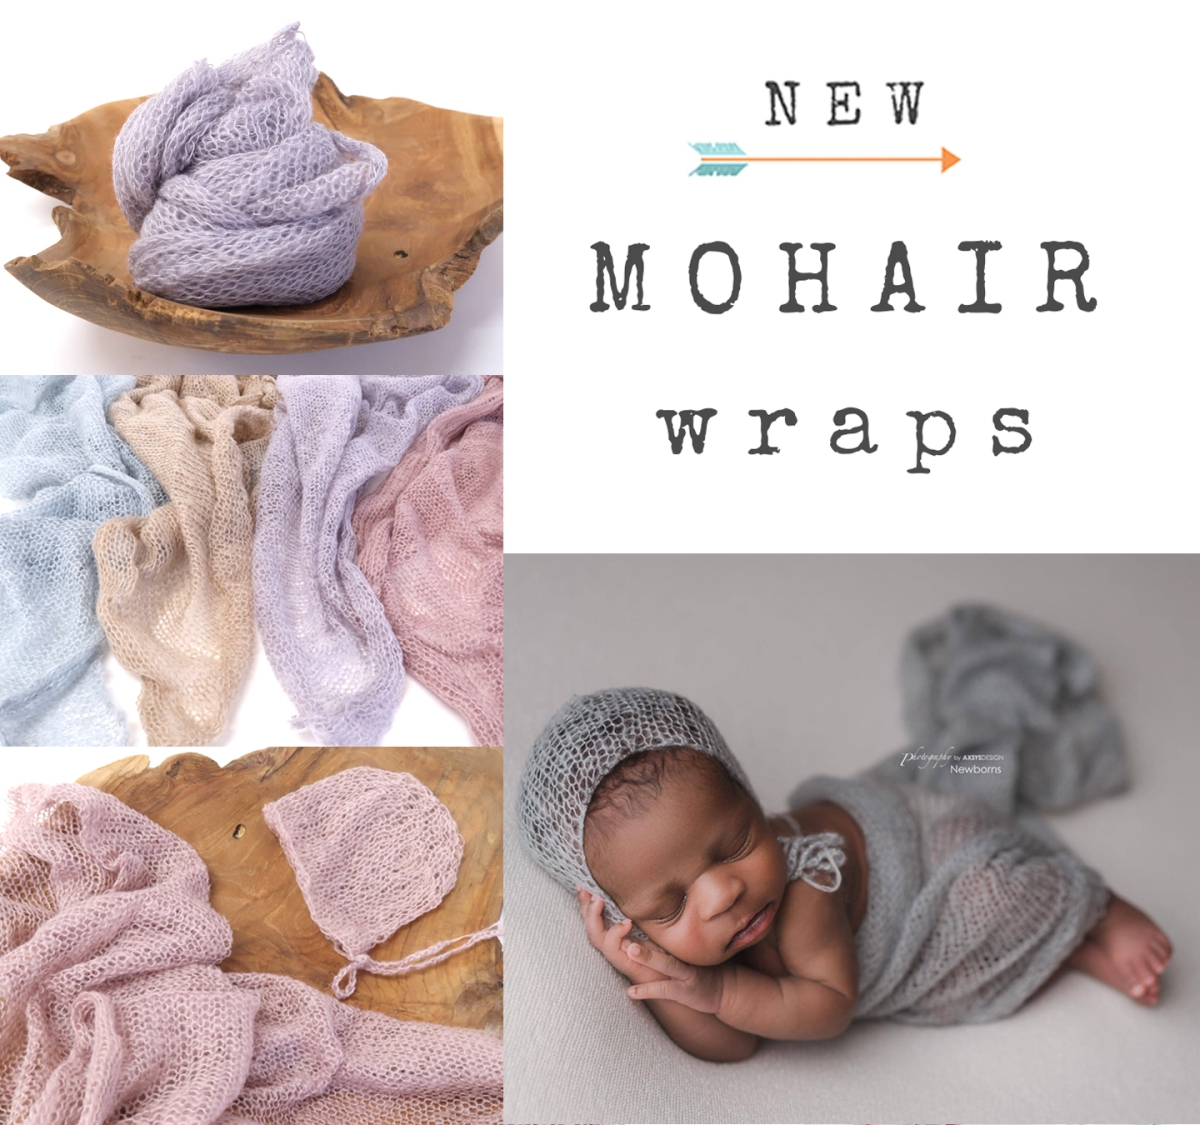 All New Mohair Wraps & Baby Bonnets!